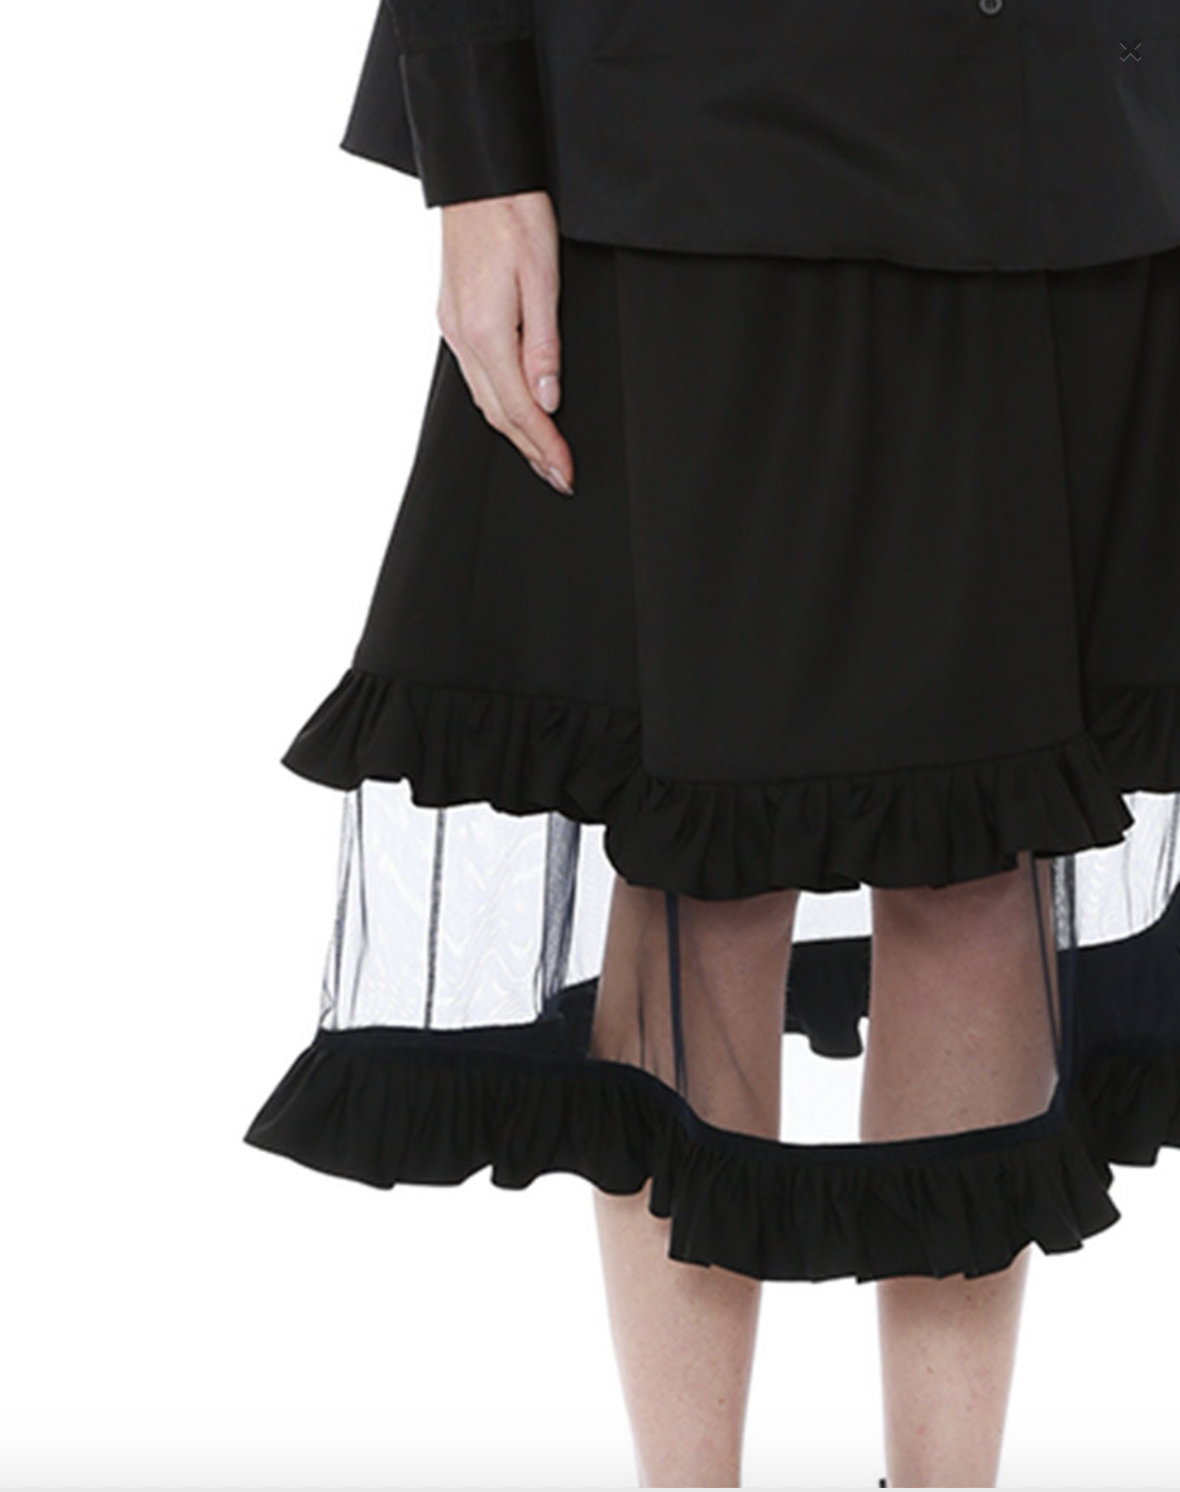 Ruffled Wool Skirt with Tulle Panel by Teija on curated-crowd.com